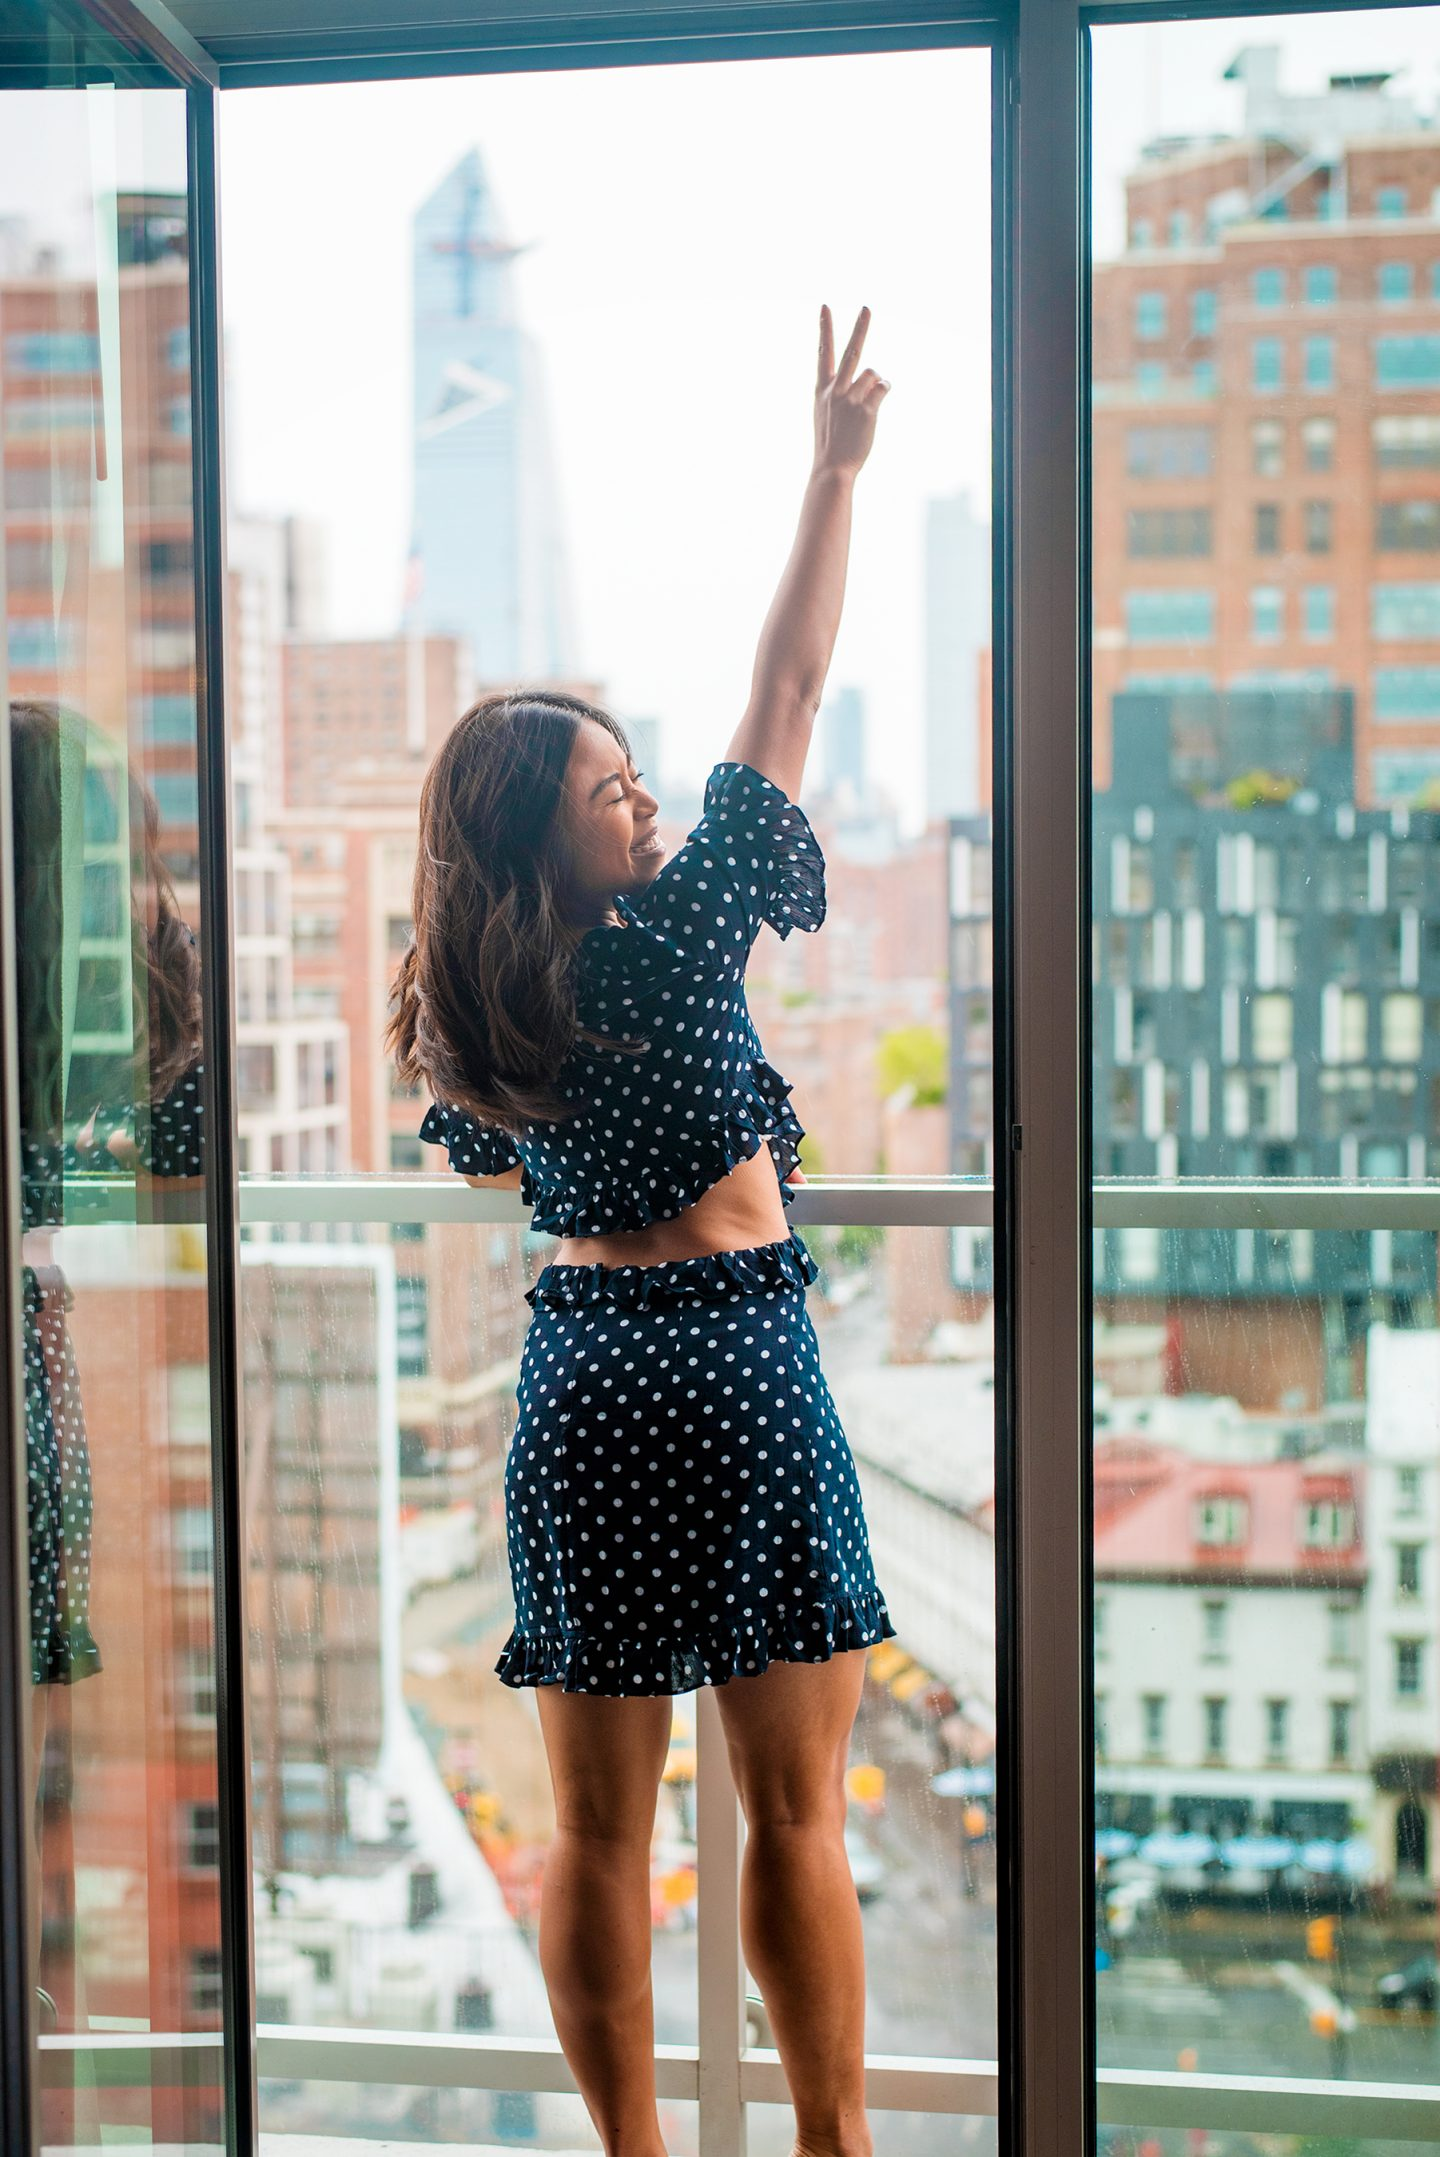 7 Reasons to Stay at the Gansevoort Hotel Meatpacking in NYC